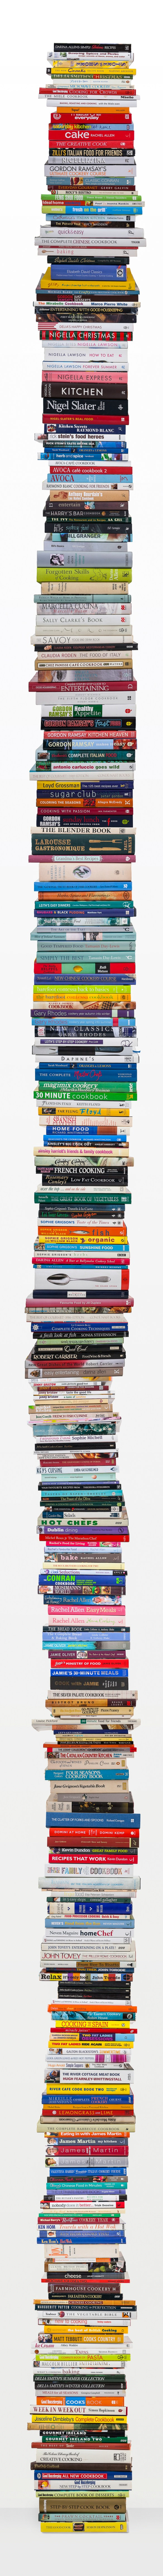 Cookbooks-Stack